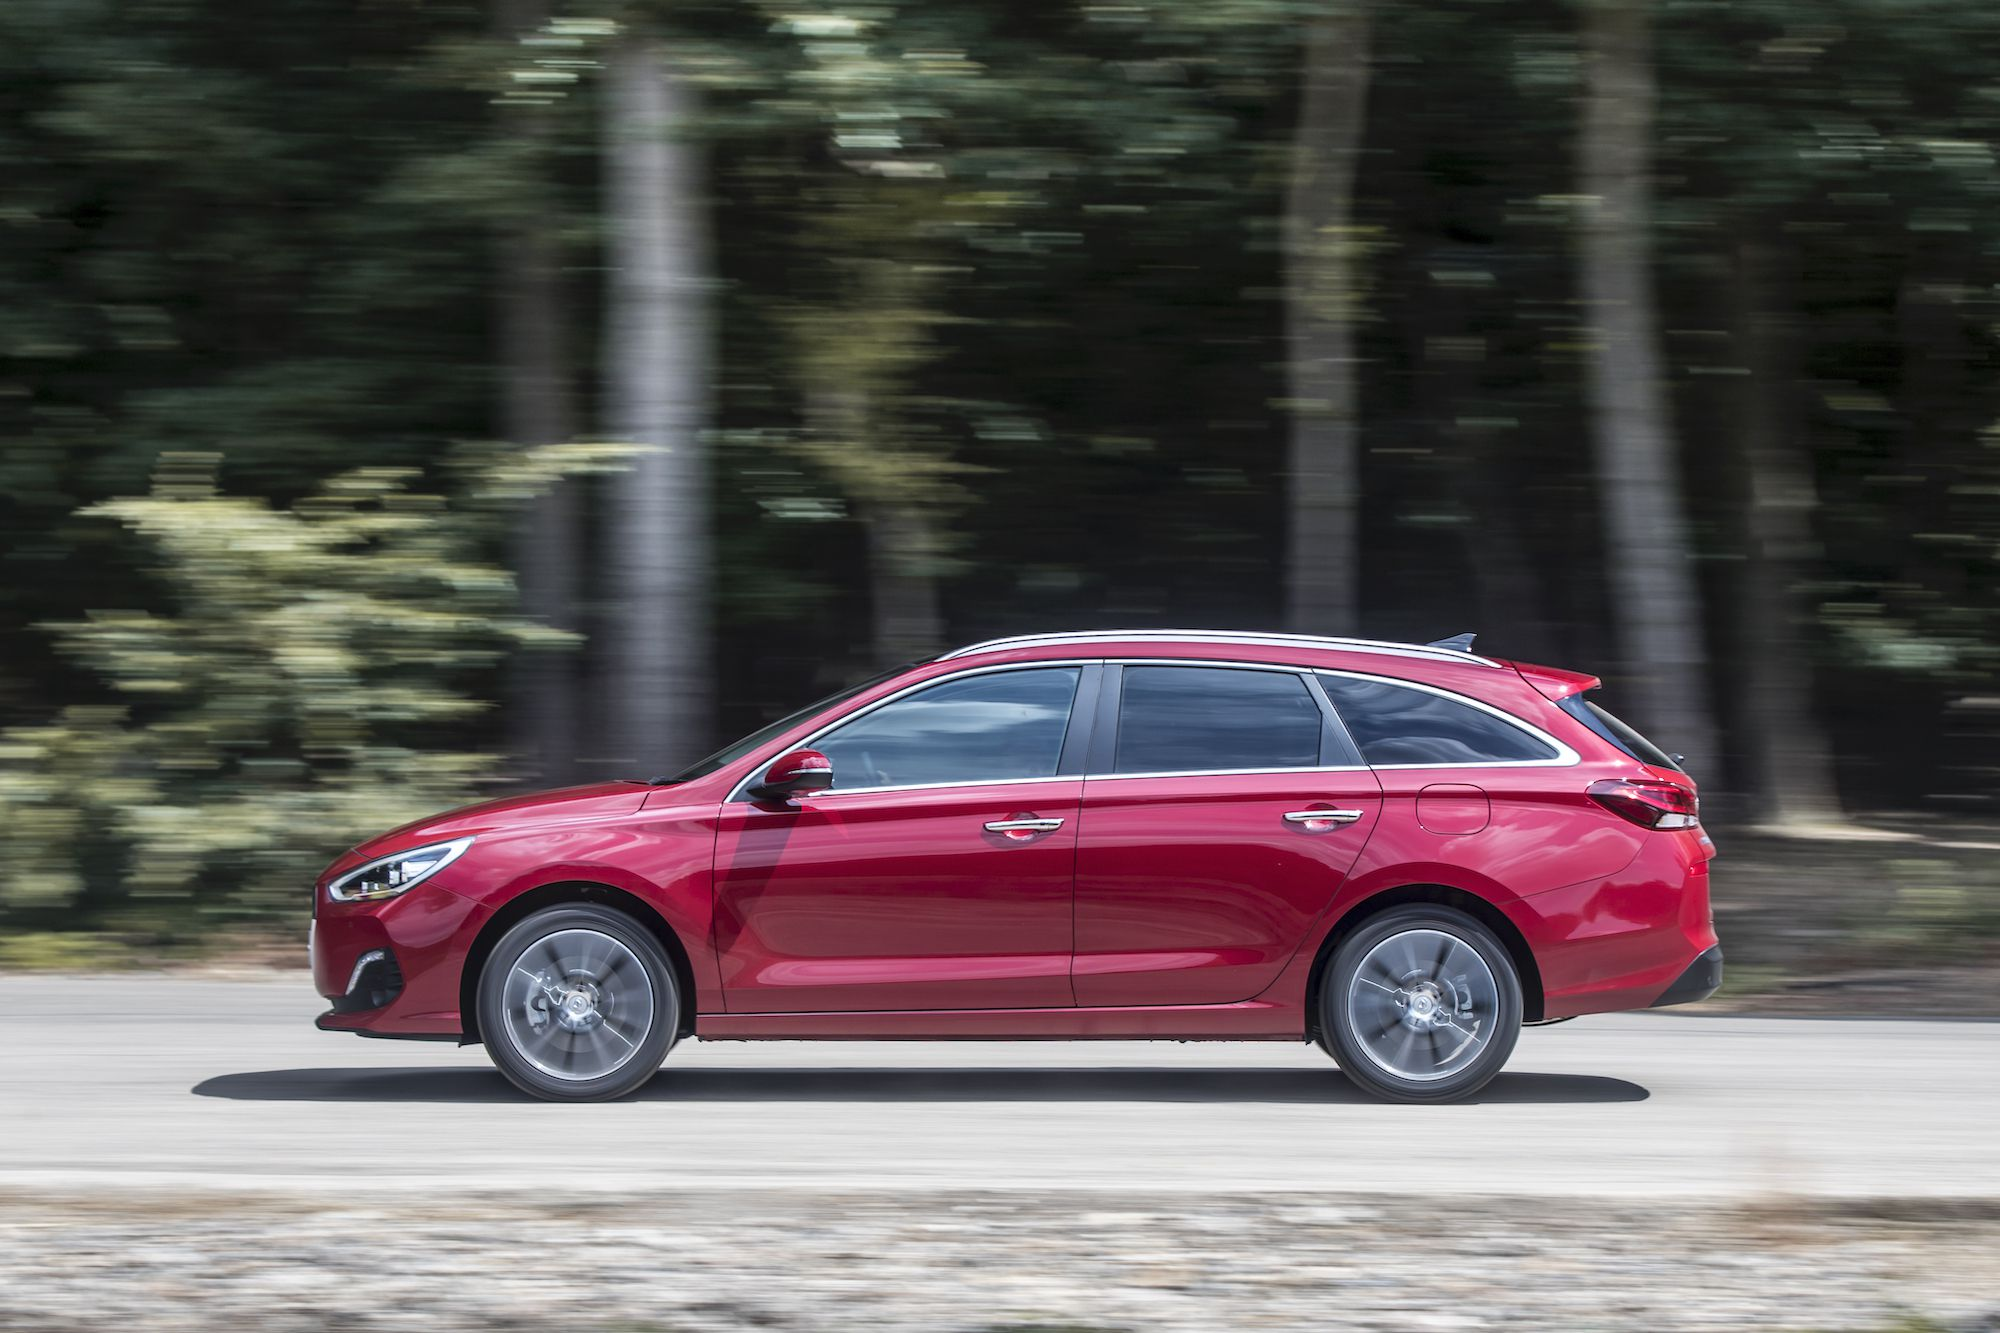 Hyundai i30 Tourer driving